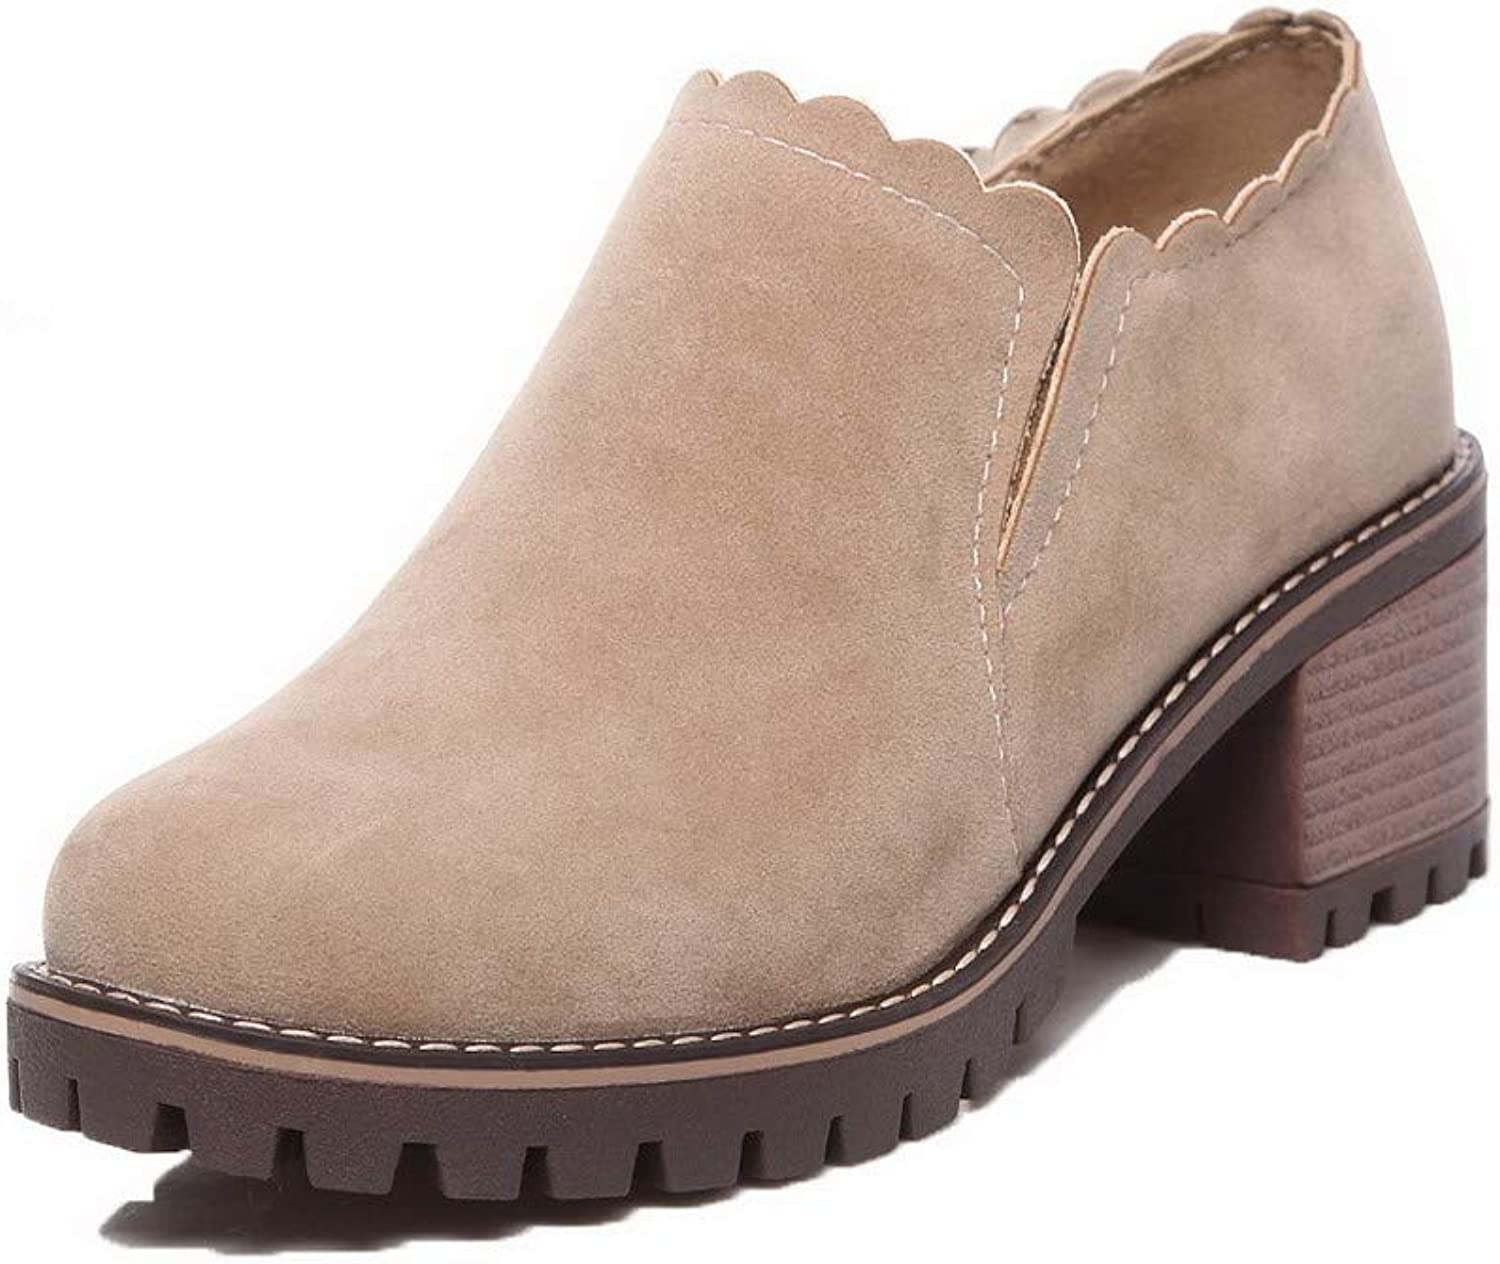 WeenFashion Women's Ankle-High Pull-On Frosted Kitten-Heels Round-Toe Boots, AMGXX112233